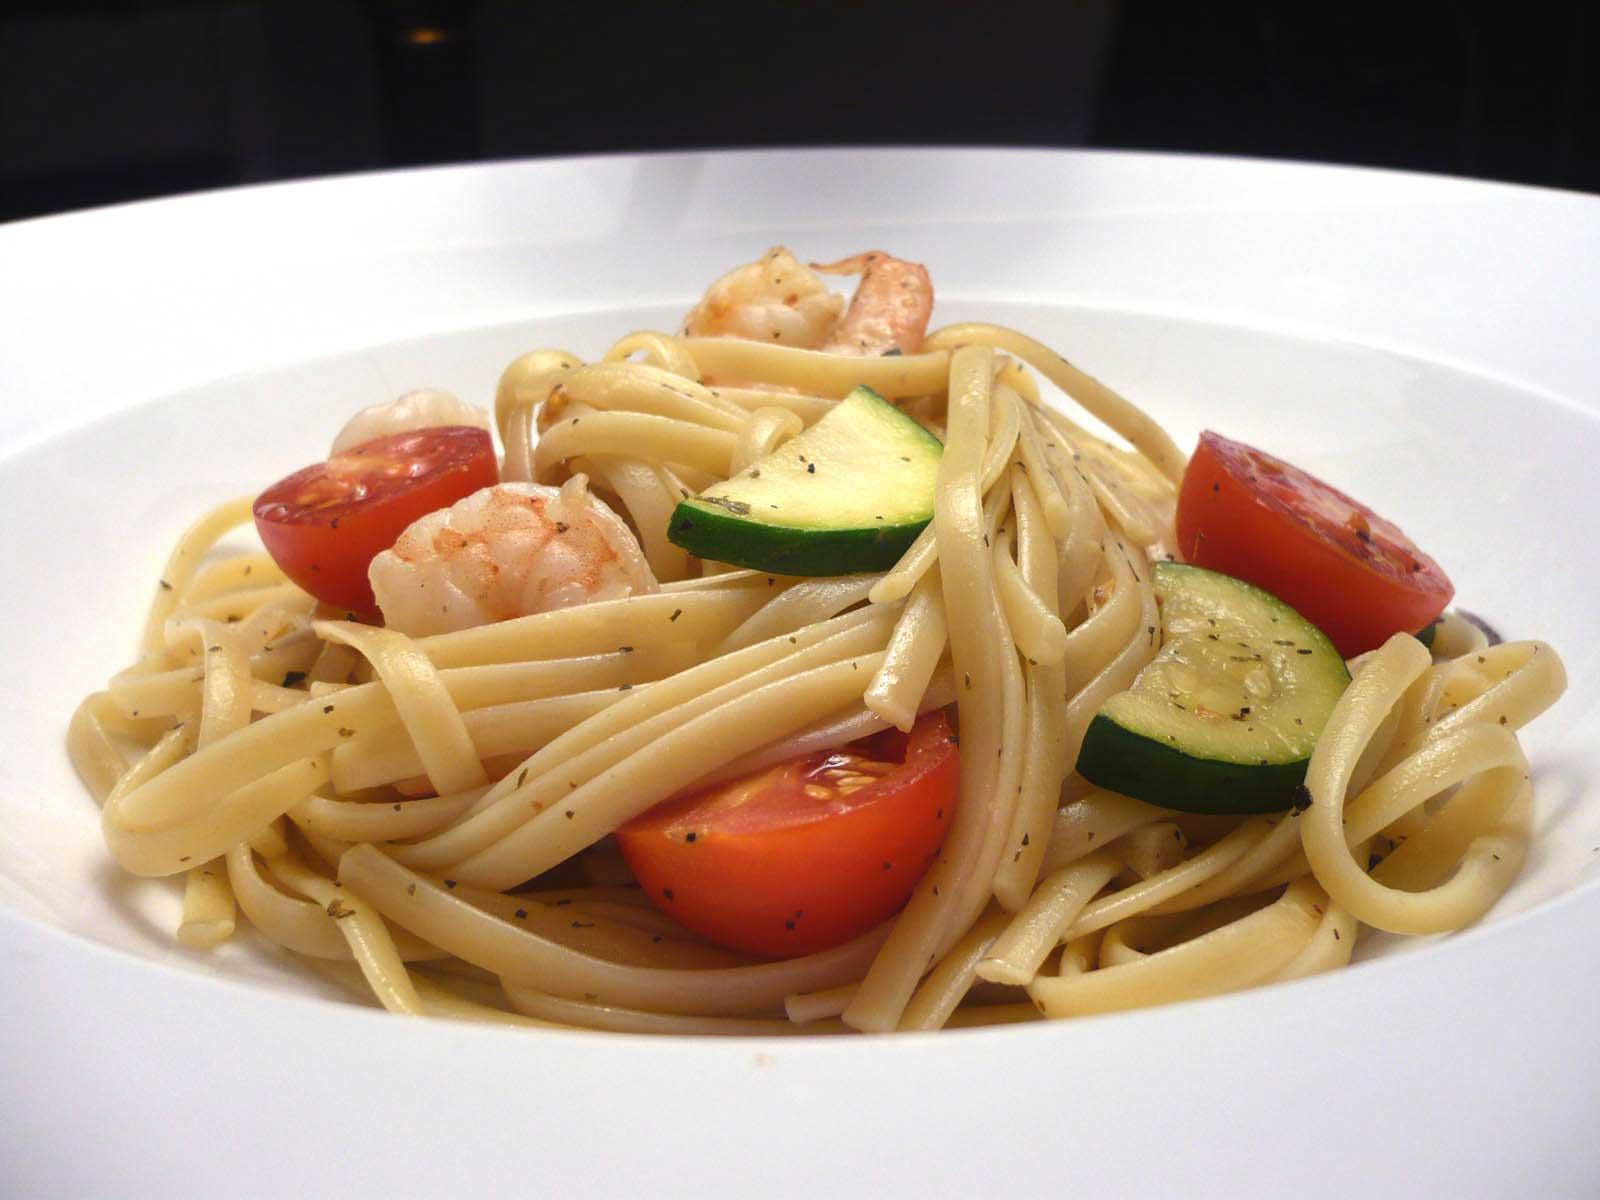 shrimp-linguine-with-zucchini-and-tomatoes.jpg